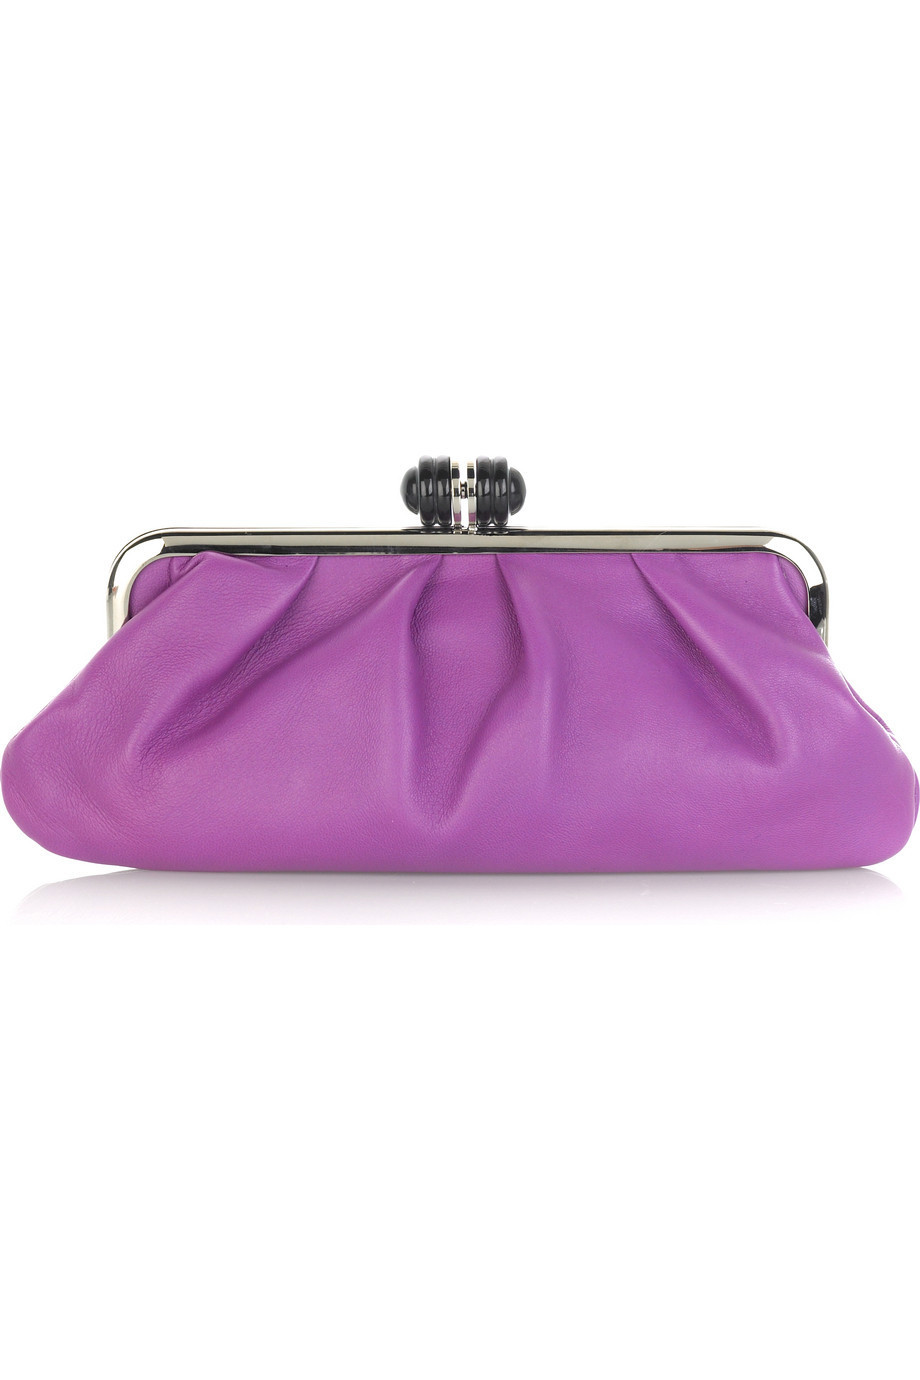 Marni Small purse clutch  | NET-A-PORTER.COM from net-a-porter.com